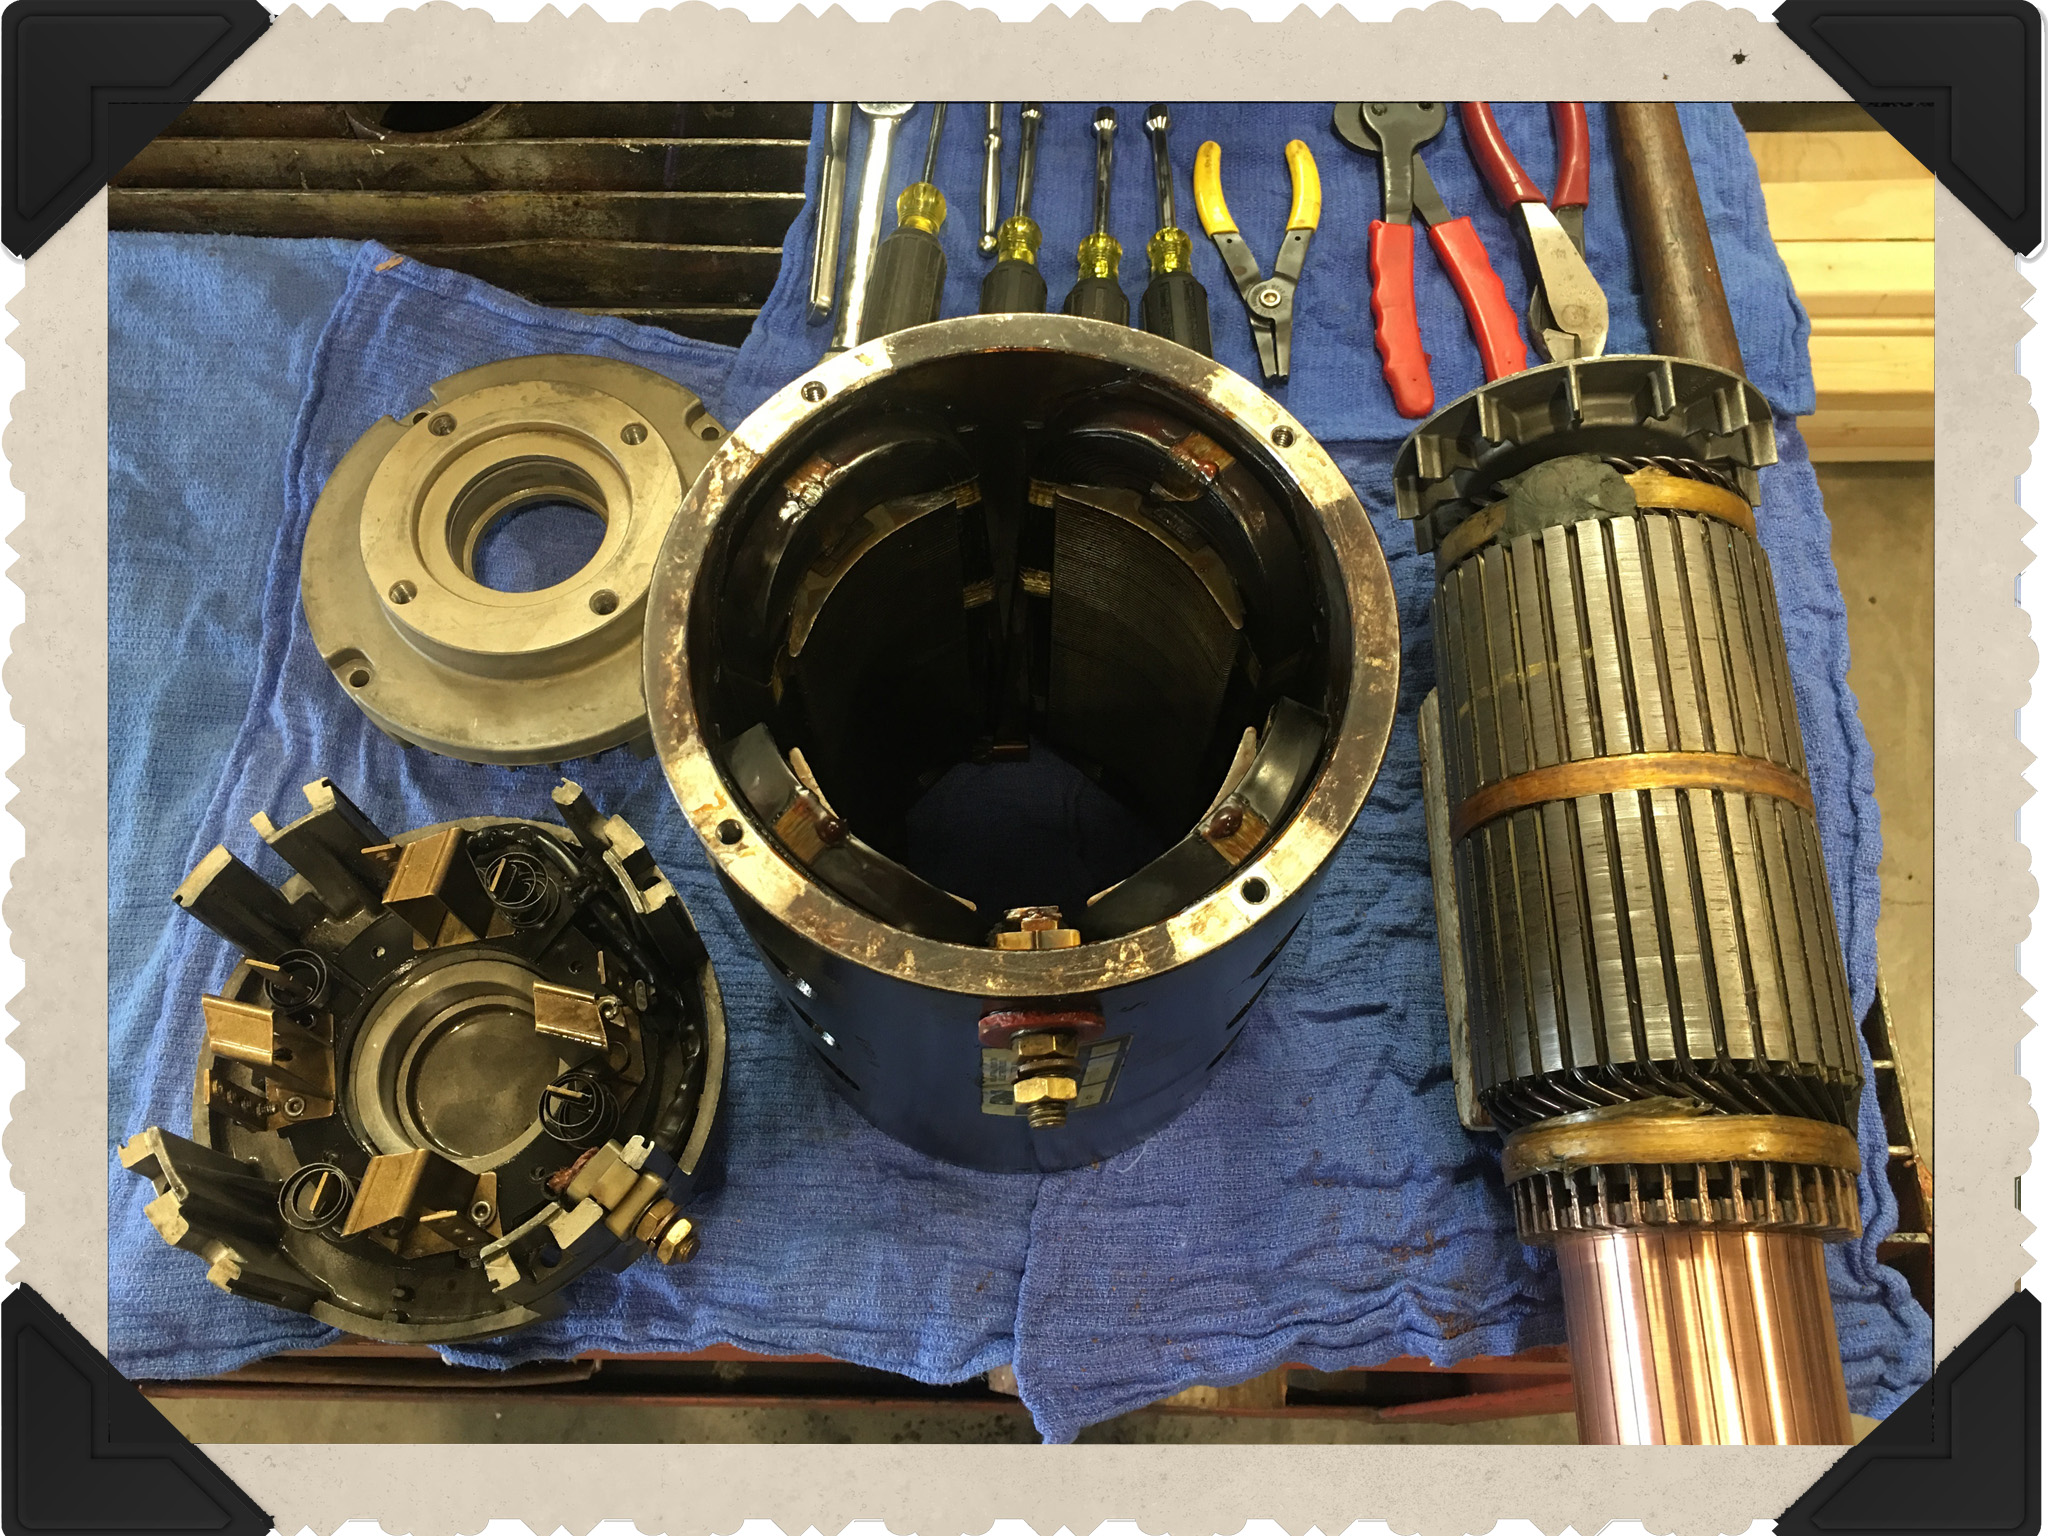 Minor Shaft Damage moreover DaytonParallelShaftDCGearmotor 6A193 additionally Ac Dc Motors also Eng MicL149 also How To Repair An Electric Vehicle Motor. on baldor dc motor brushes